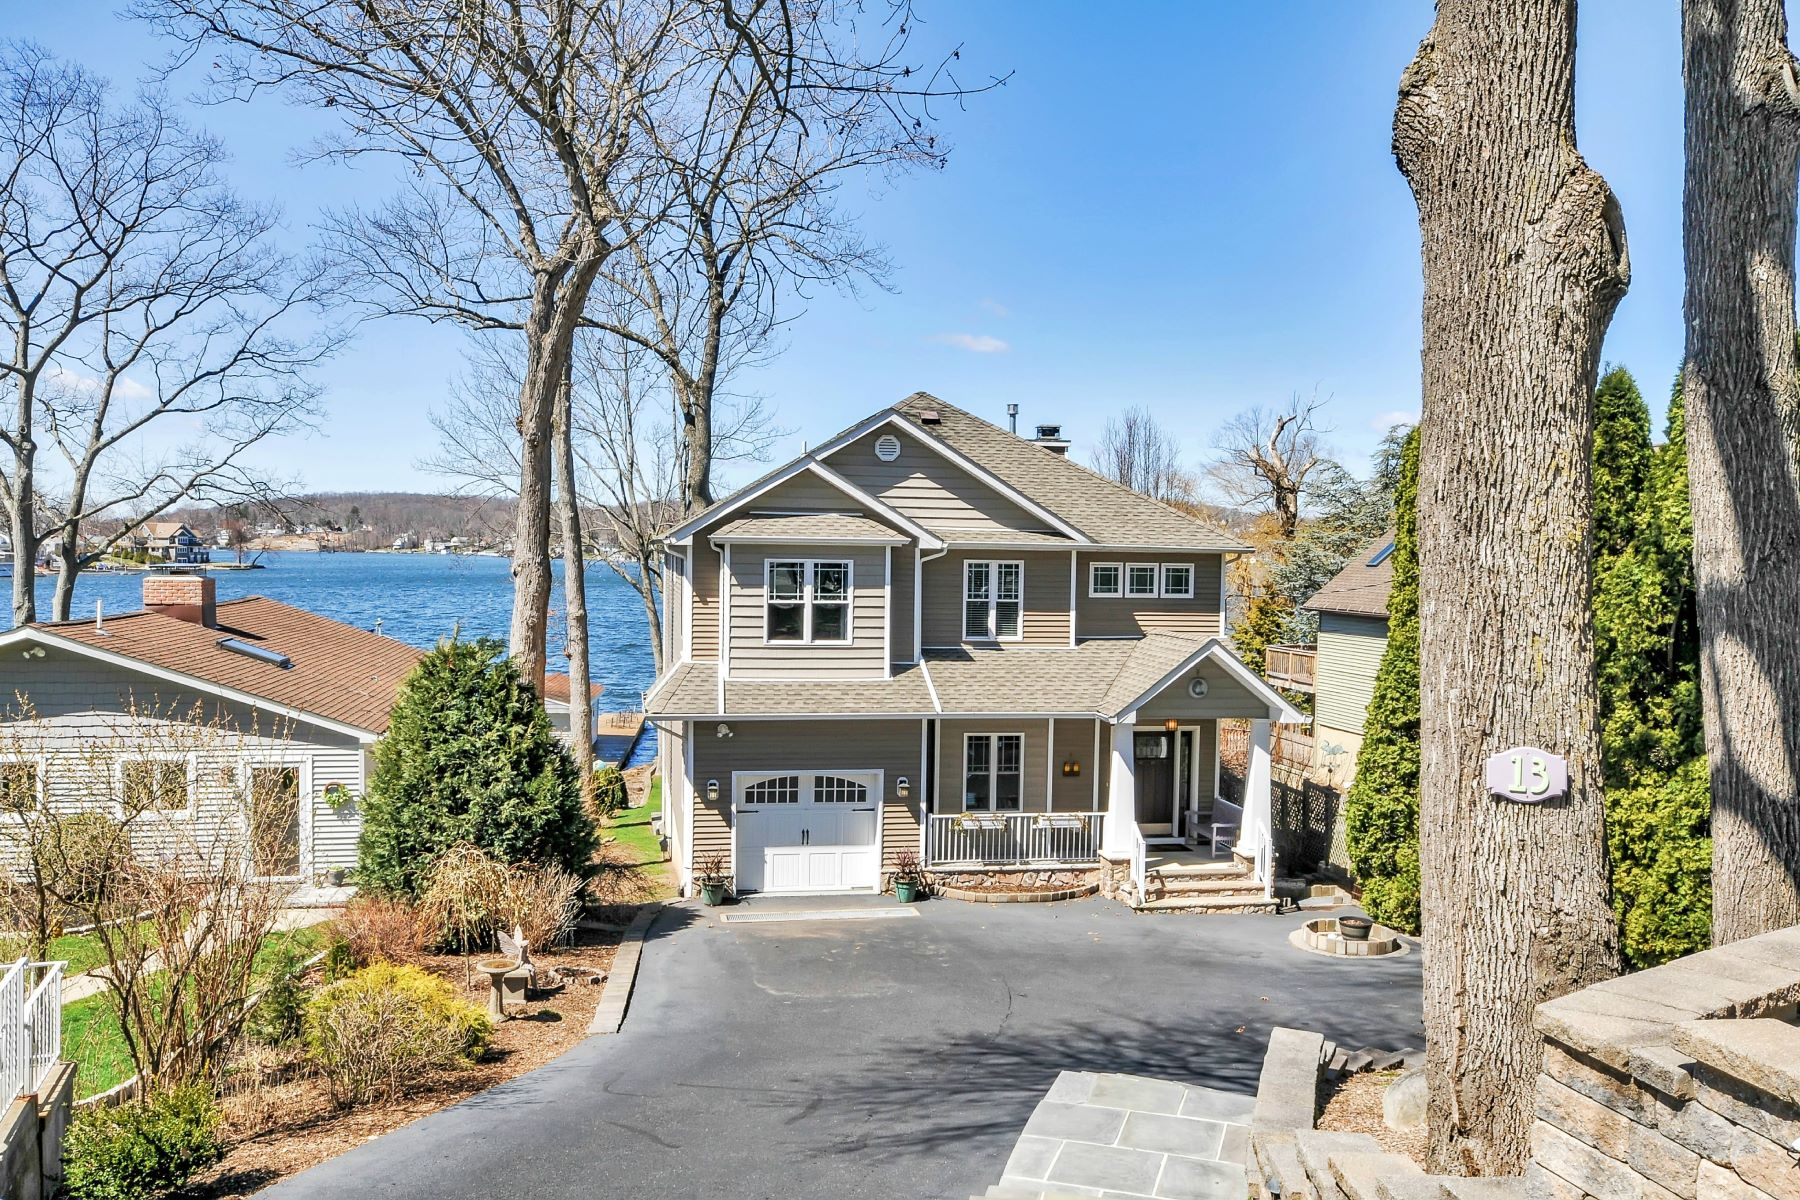 Casa Unifamiliar por un Venta en Amazing lakefront views and sunsets all year long. 13 Bertrand Island Road Mount Arlington, Nueva Jersey 07856 Estados Unidos